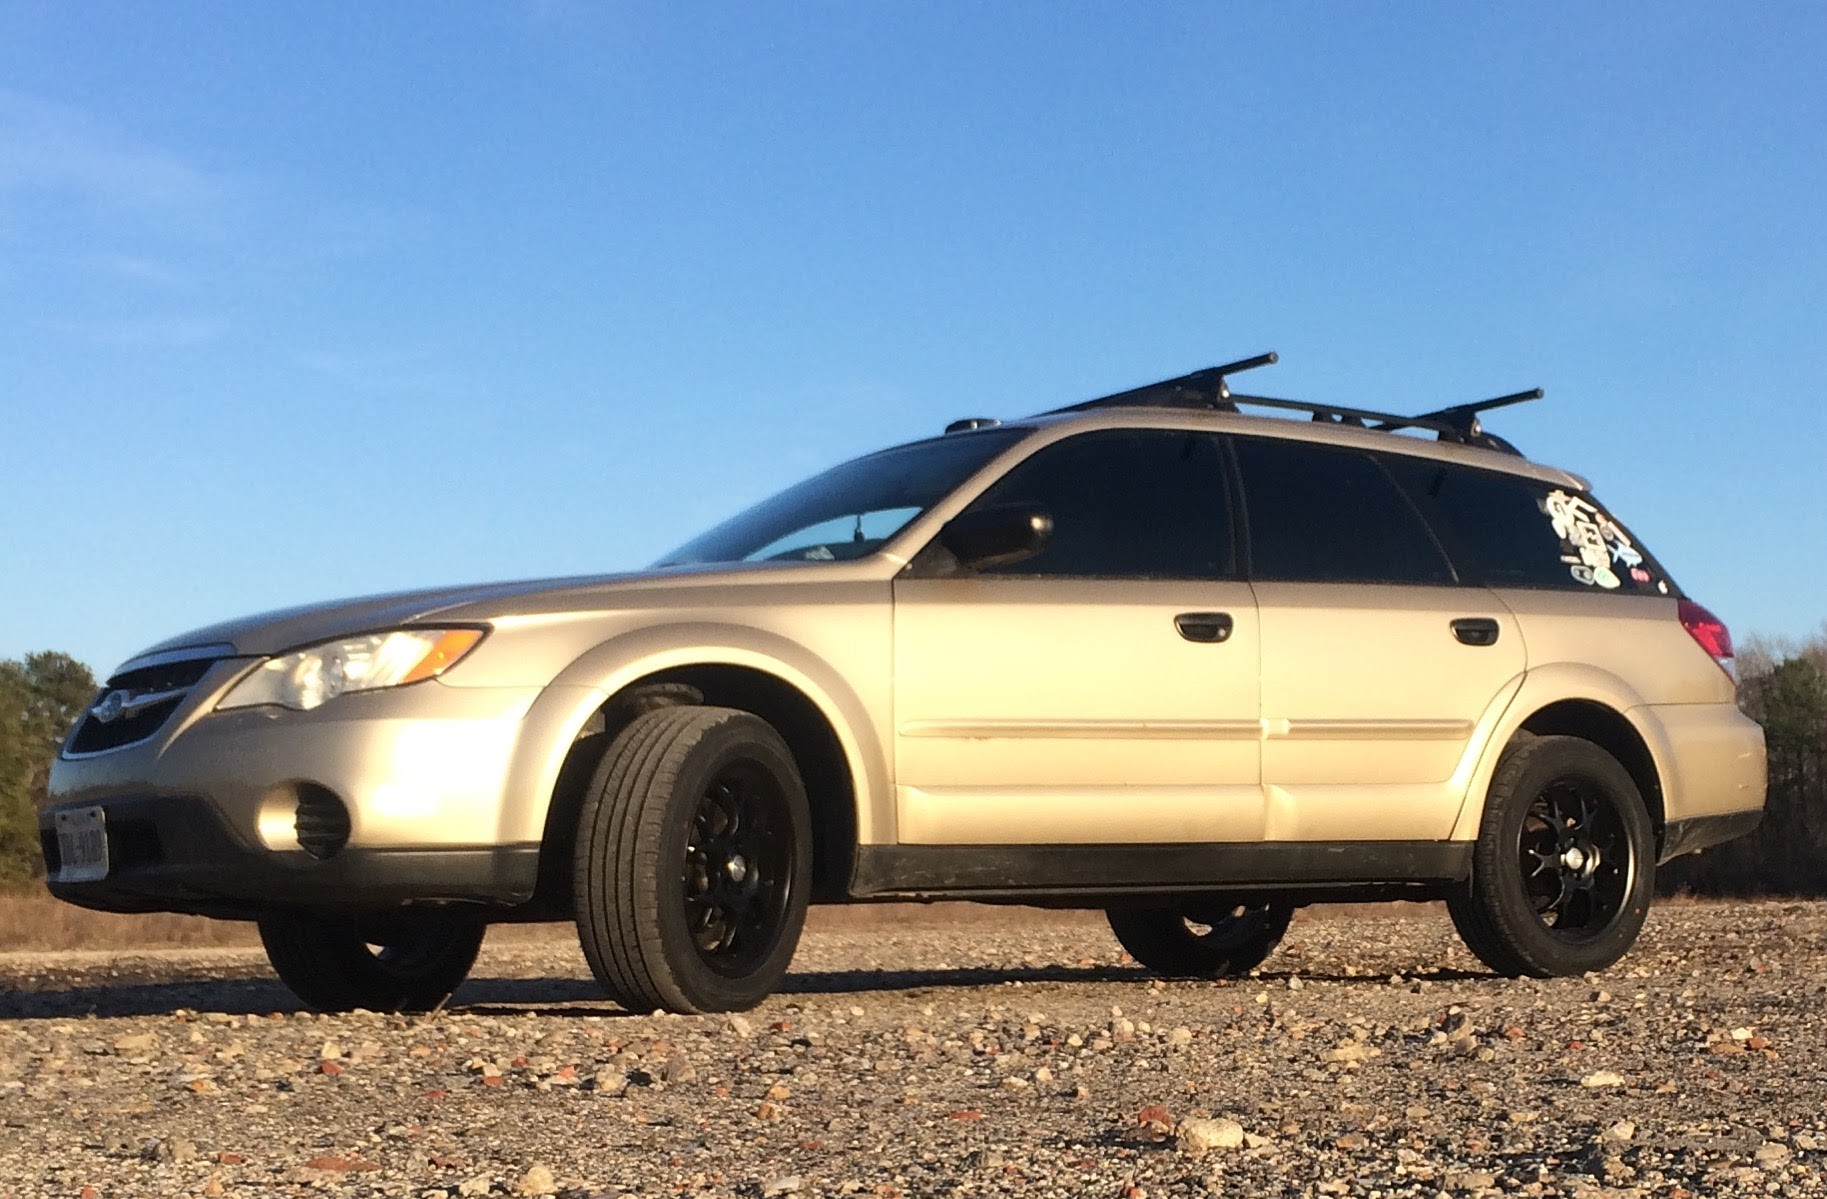 08 ob new wheels tires report and inquiry subaru outback subaru outback forums. Black Bedroom Furniture Sets. Home Design Ideas